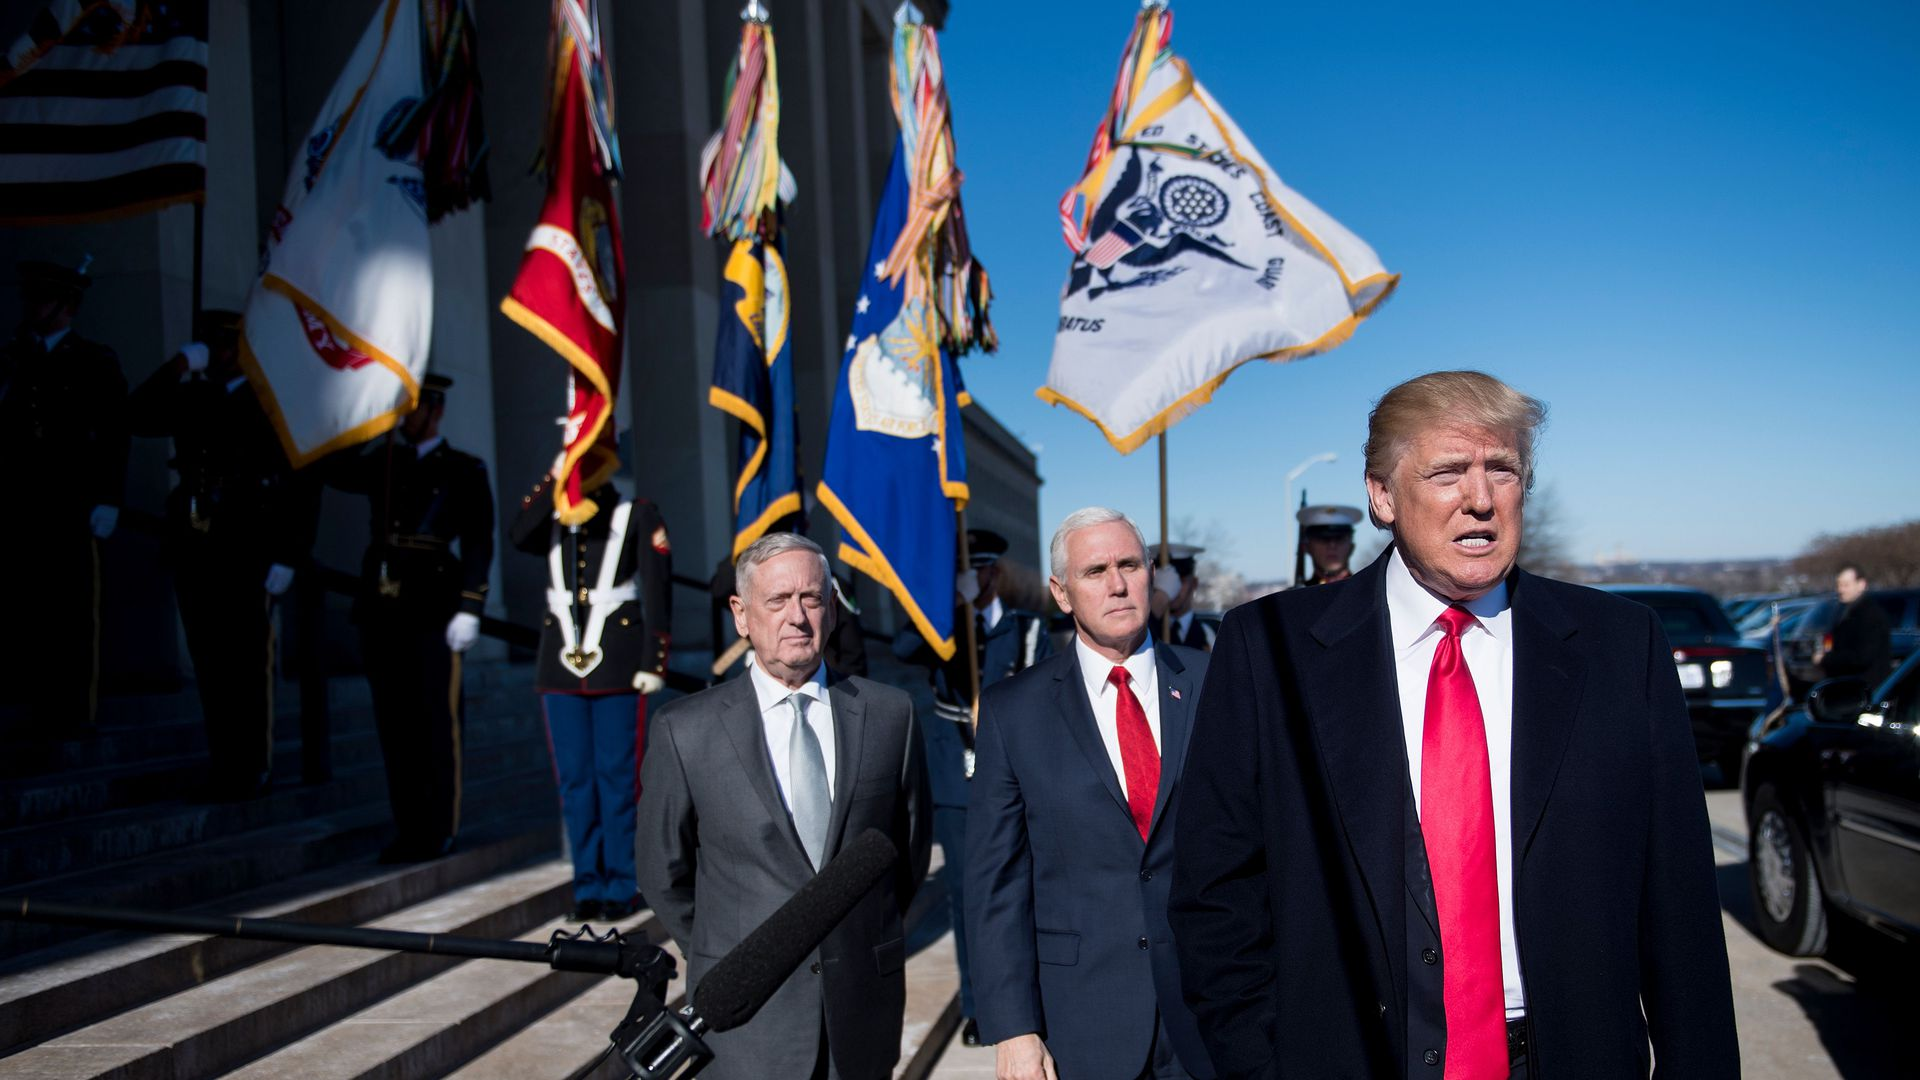 Trump, Pence and Mattis outside the Pentagon